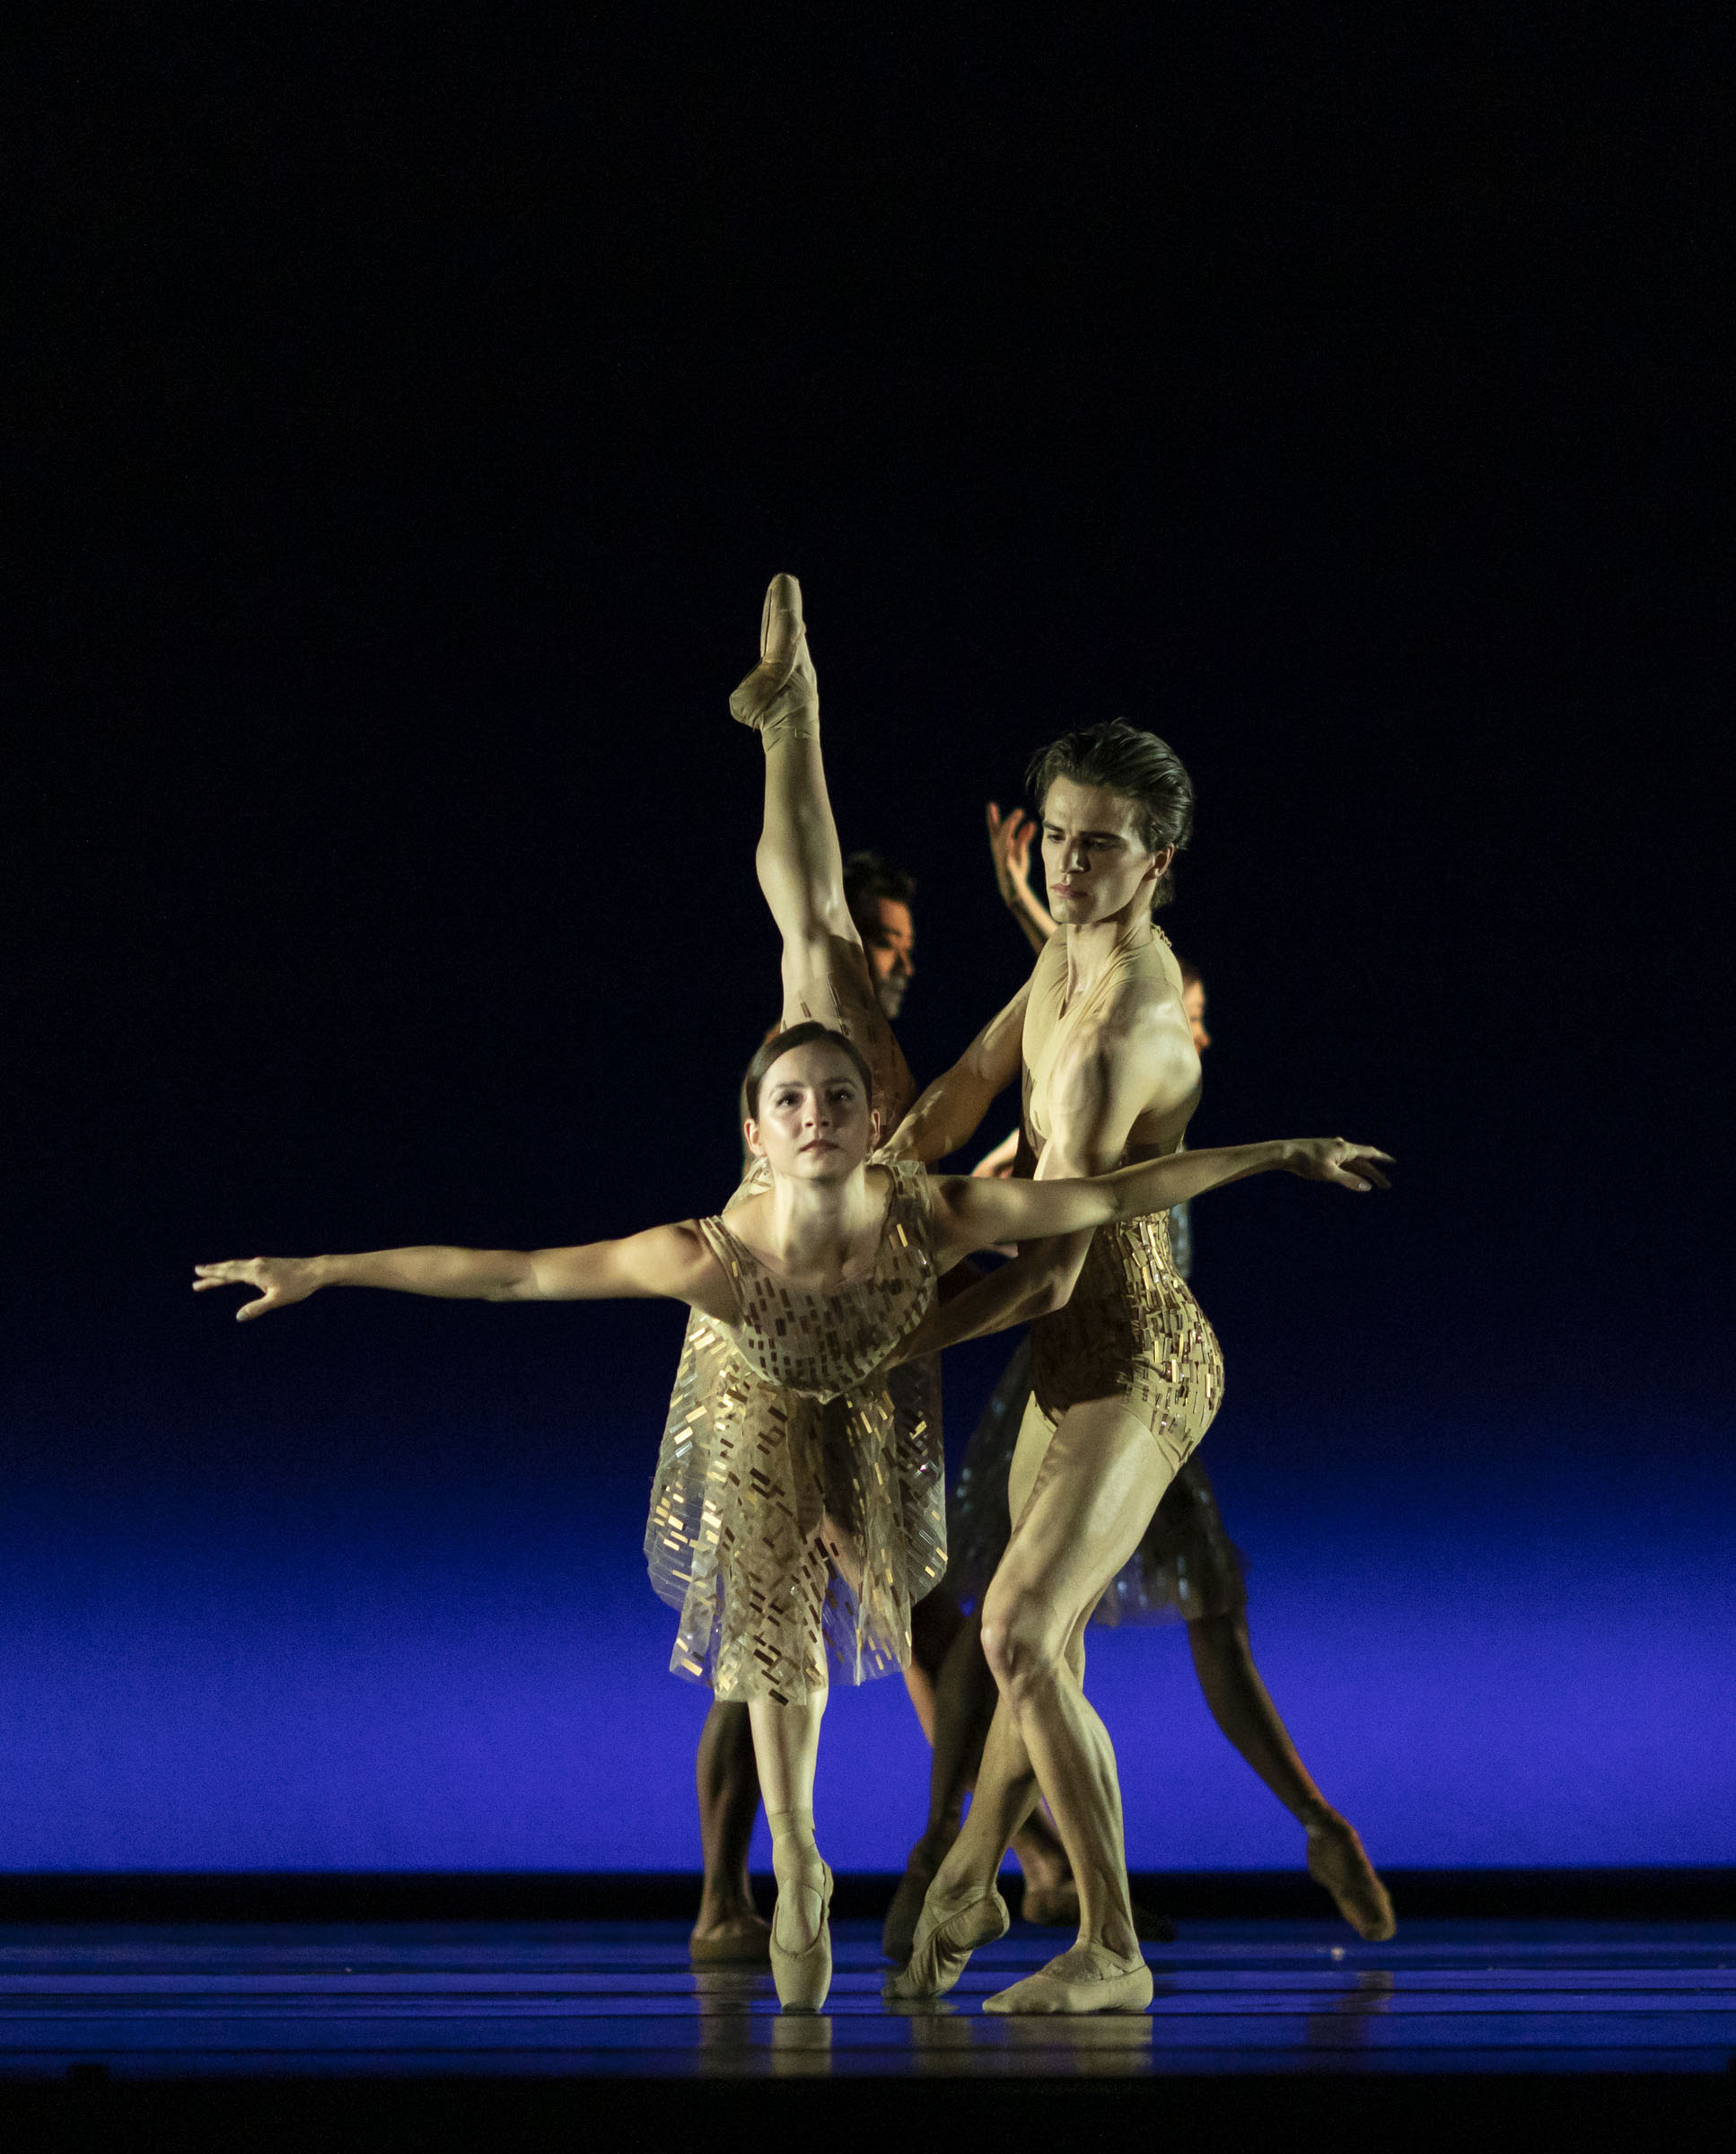 Within the Golden Hour - Choreography by Christopher Wheeldon